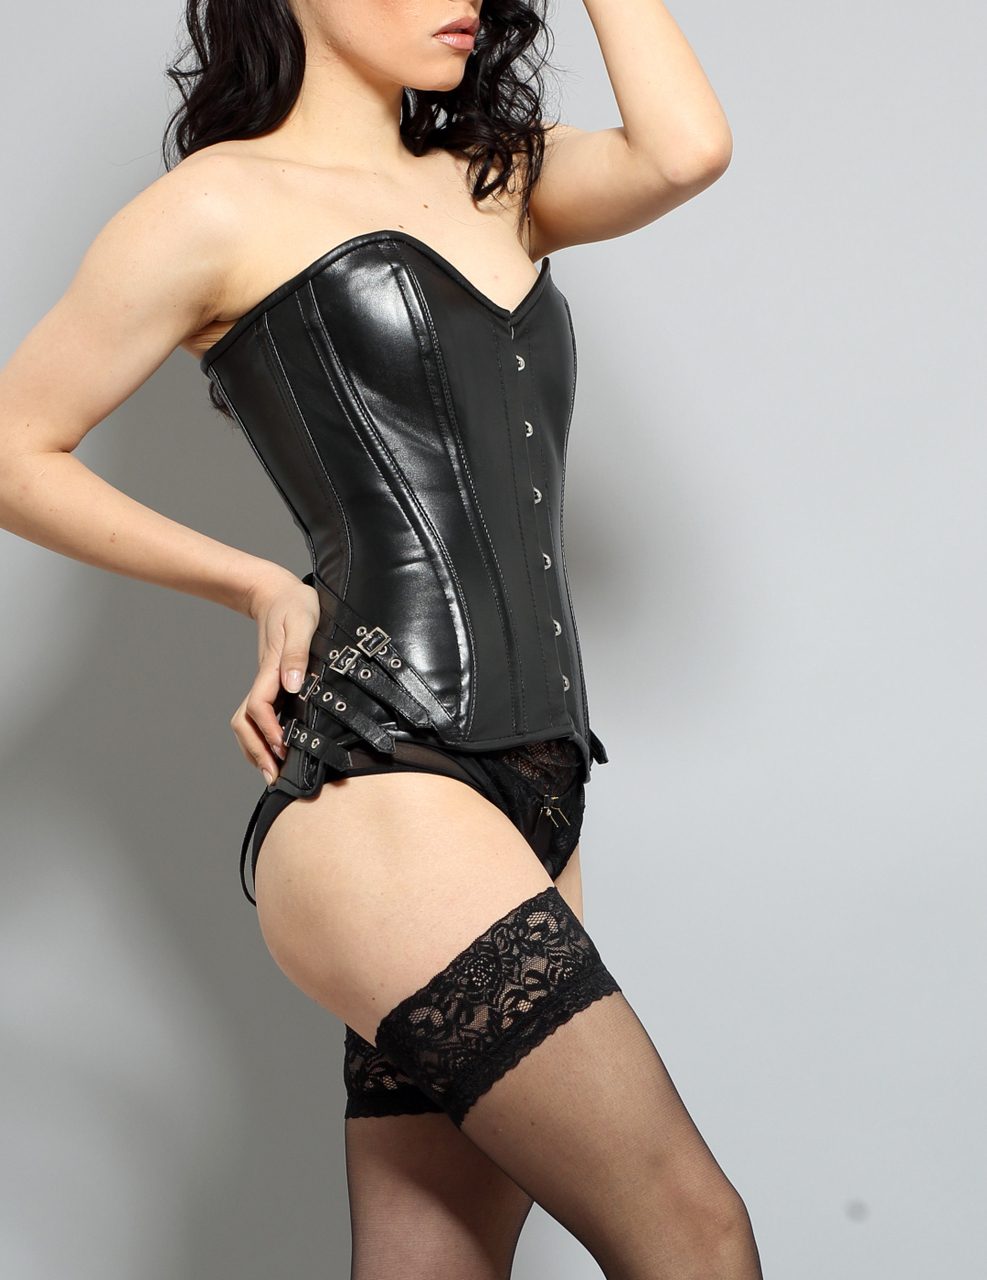 Leather Corset Steel Boned with Buckles